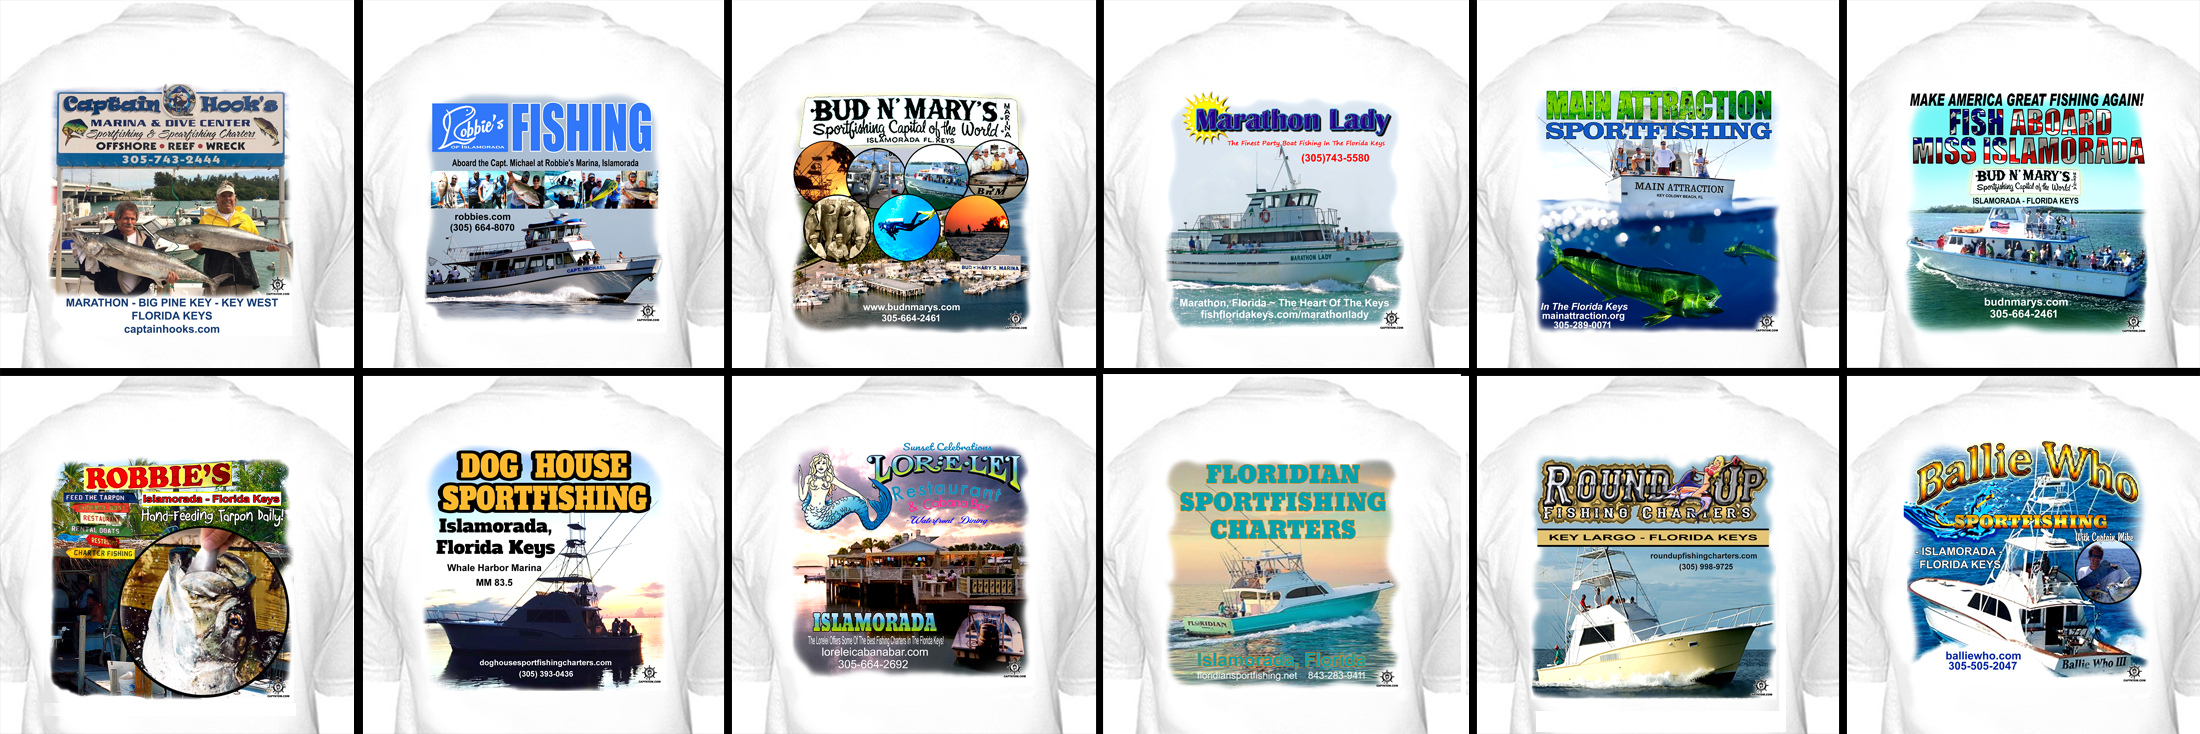 Examples of Capt'n Tom's Custom T-Shirts